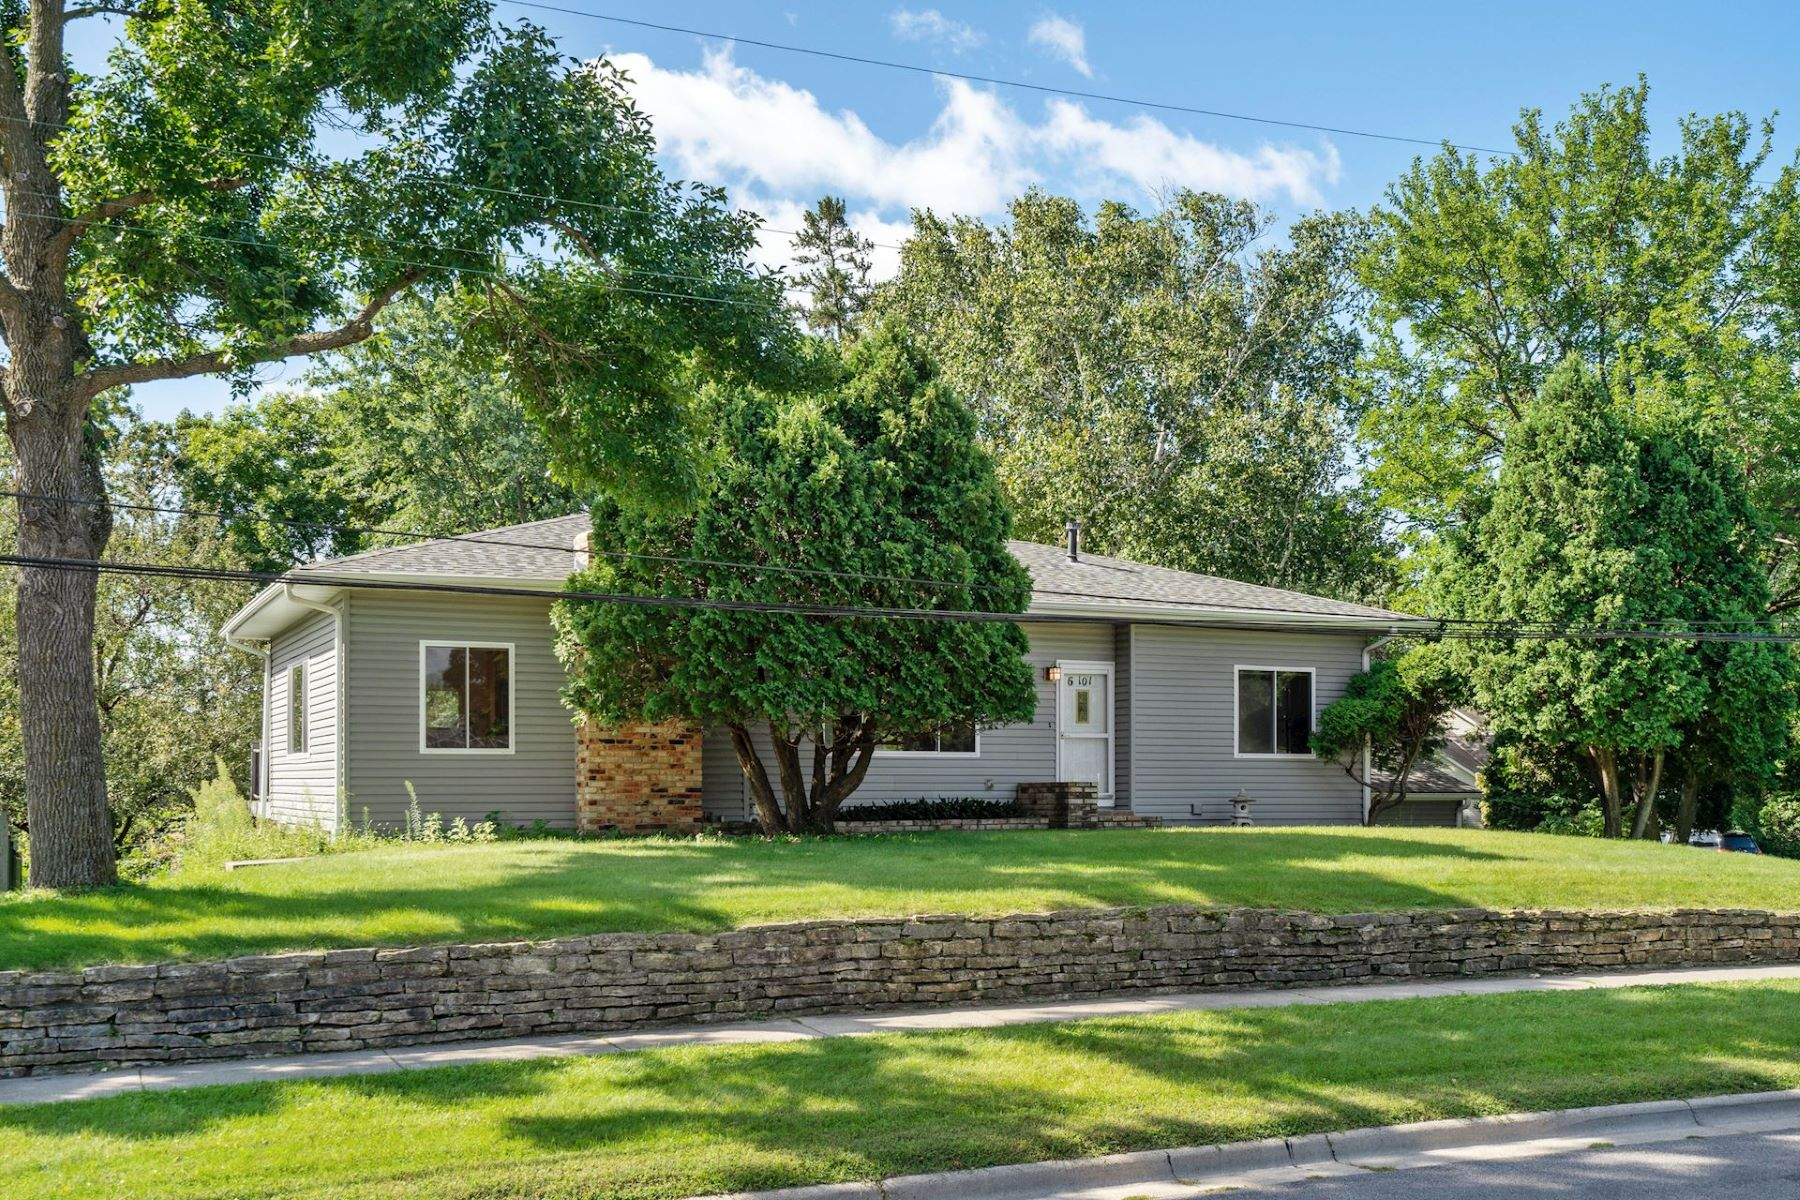 Single Family Homes for Sale at 6101 W 94th Street Bloomington, Minnesota 55438 United States